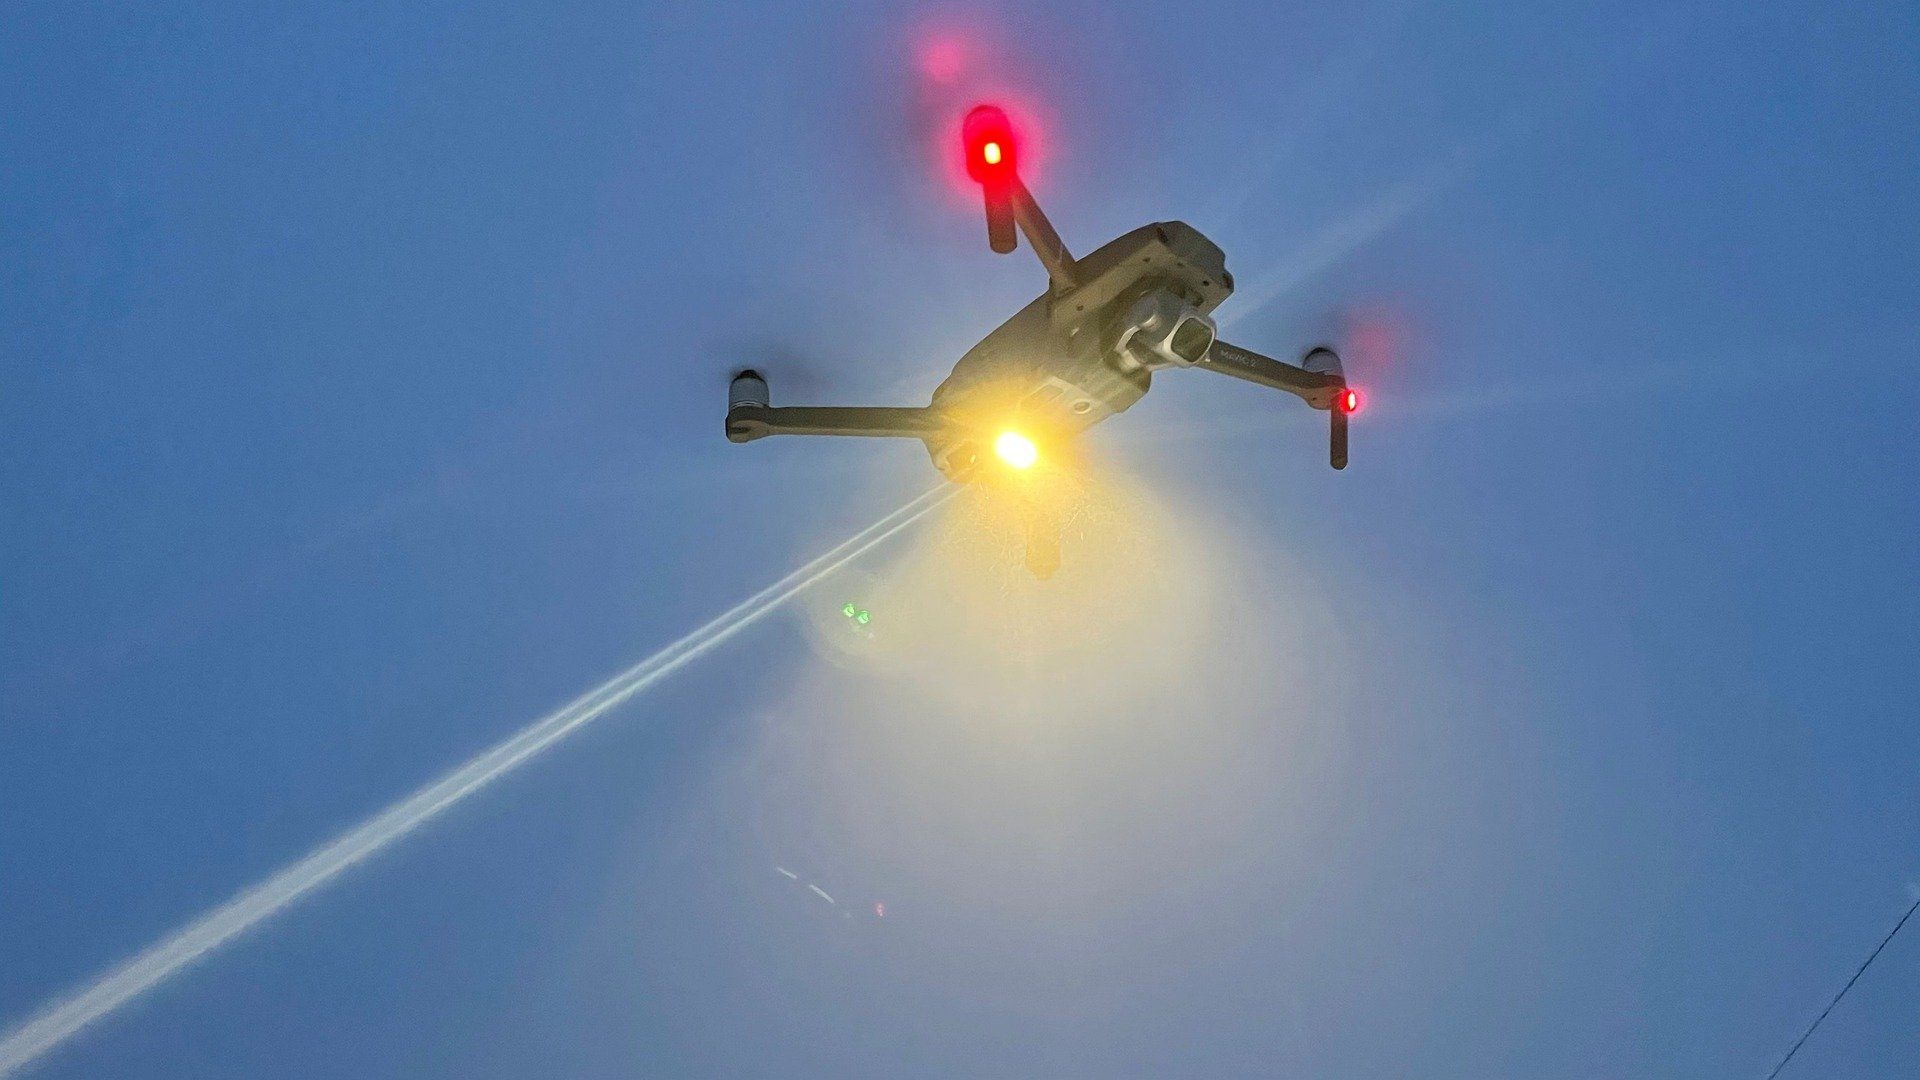 New Weapon Blasts Microwaves to Knock Drones Out of the Sky